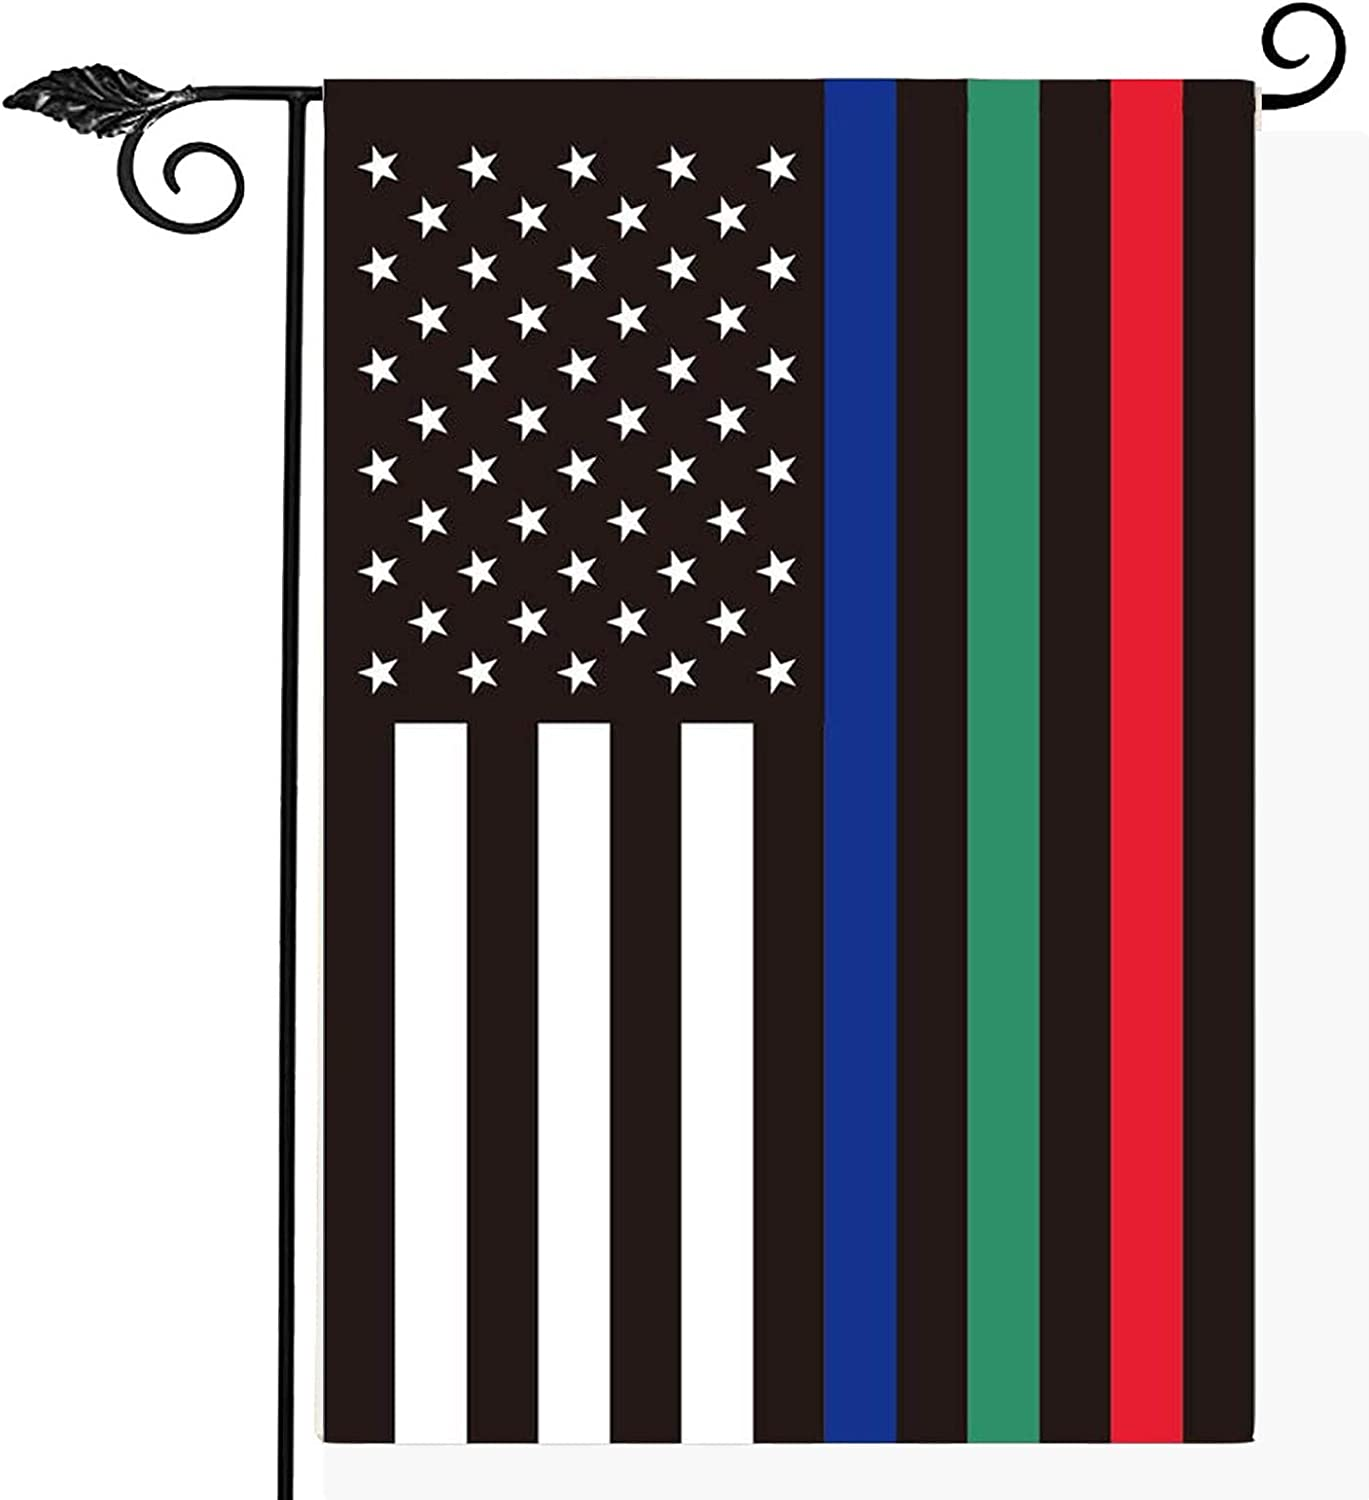 Red Blue Greeen Line American Garden Flag- Support Firefighter Police USA Flags 12x18 Inch for Firemen Law Enforcement